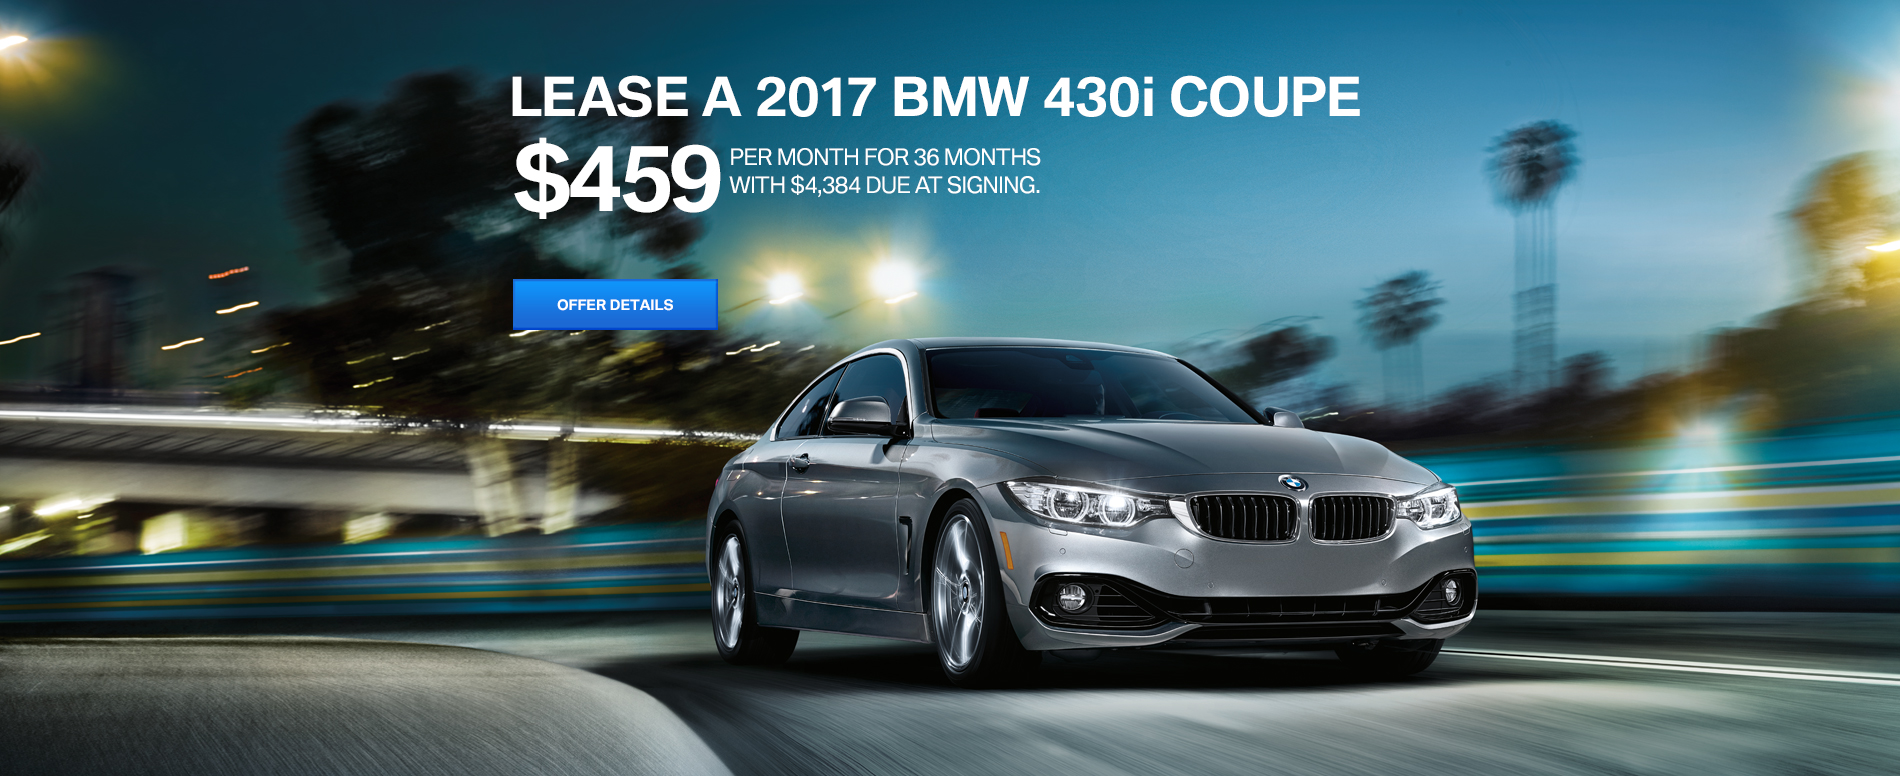 LEASE A 2017 BMW 430i COUPE FOR $459/MO FOR 36 MONTHS